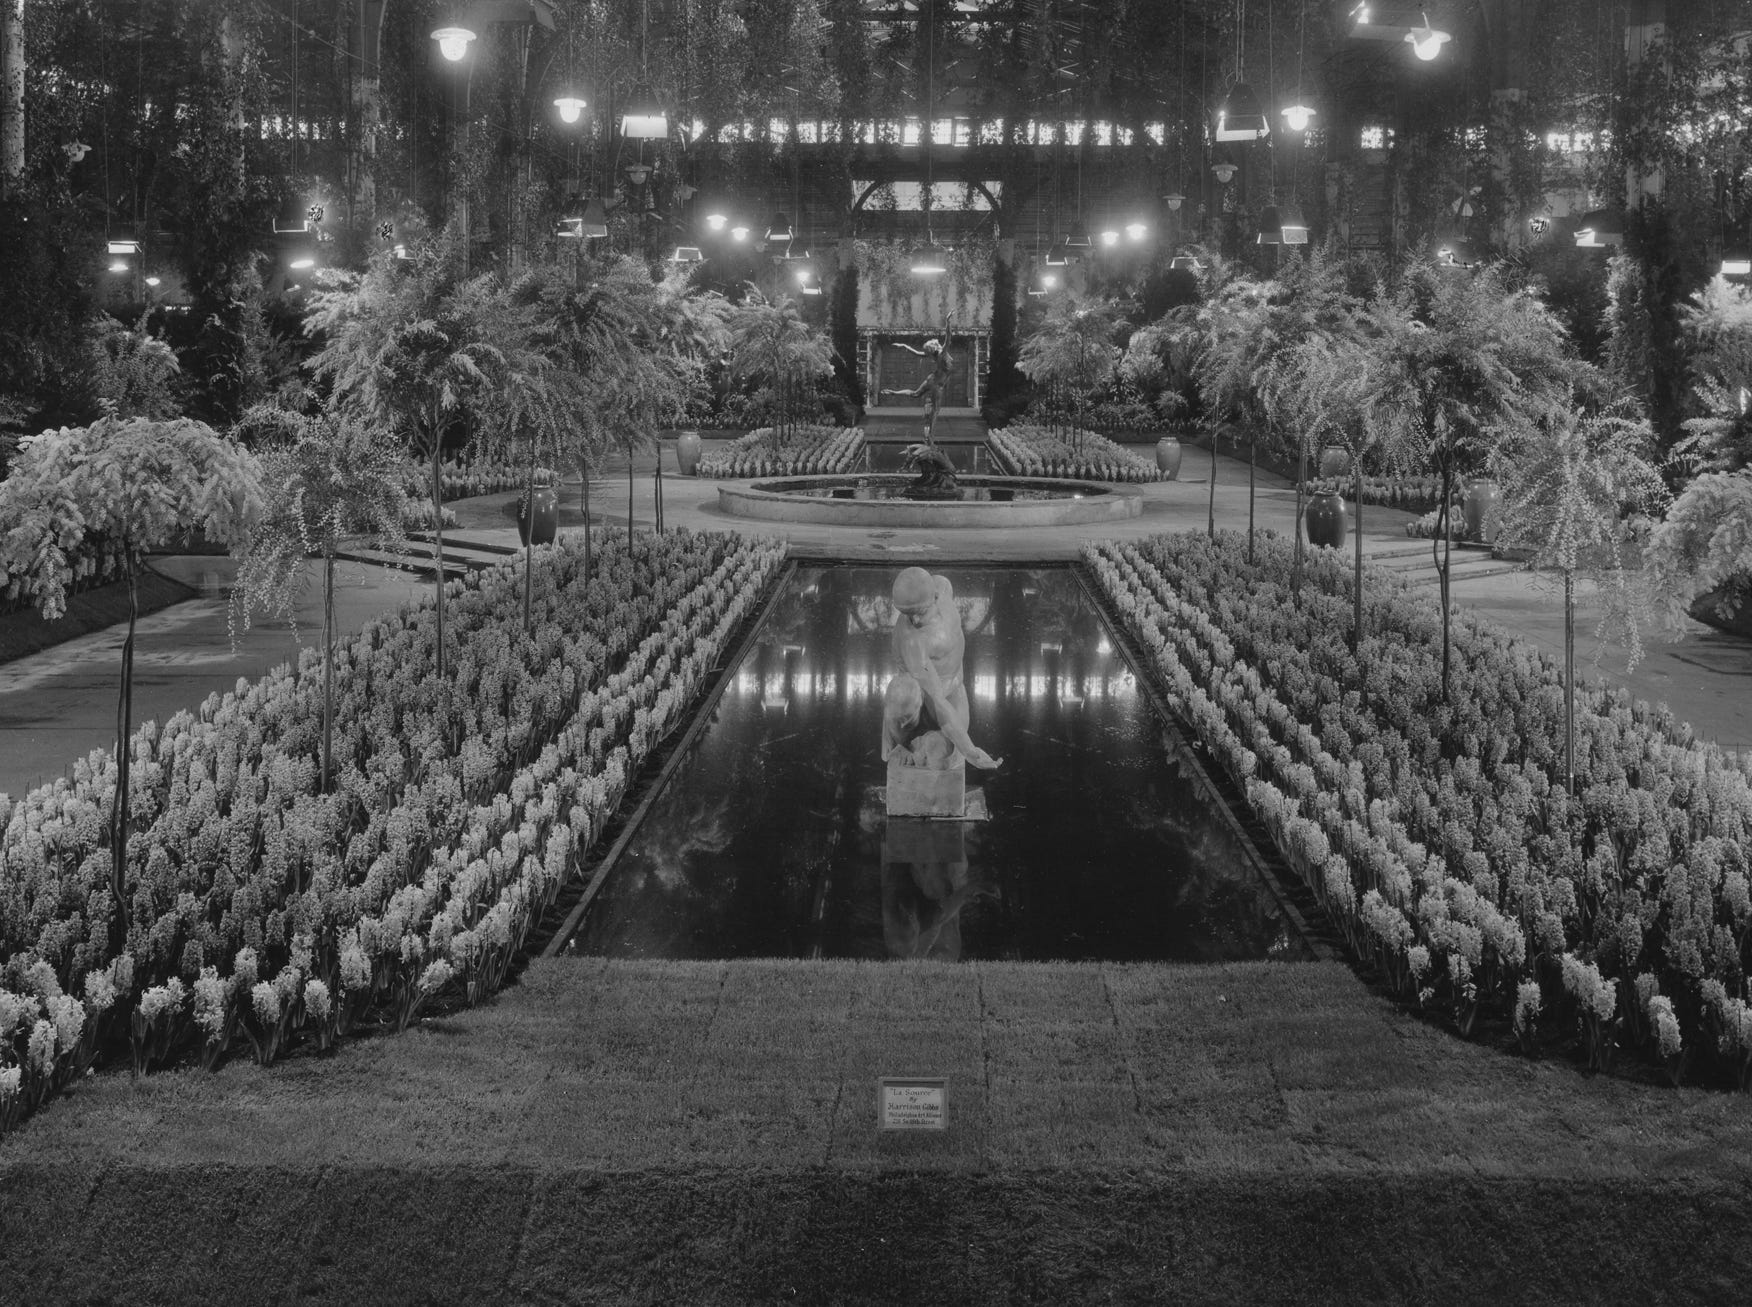 The central exhibit was a water feature at the 1935 Philadelphia Flower Show.